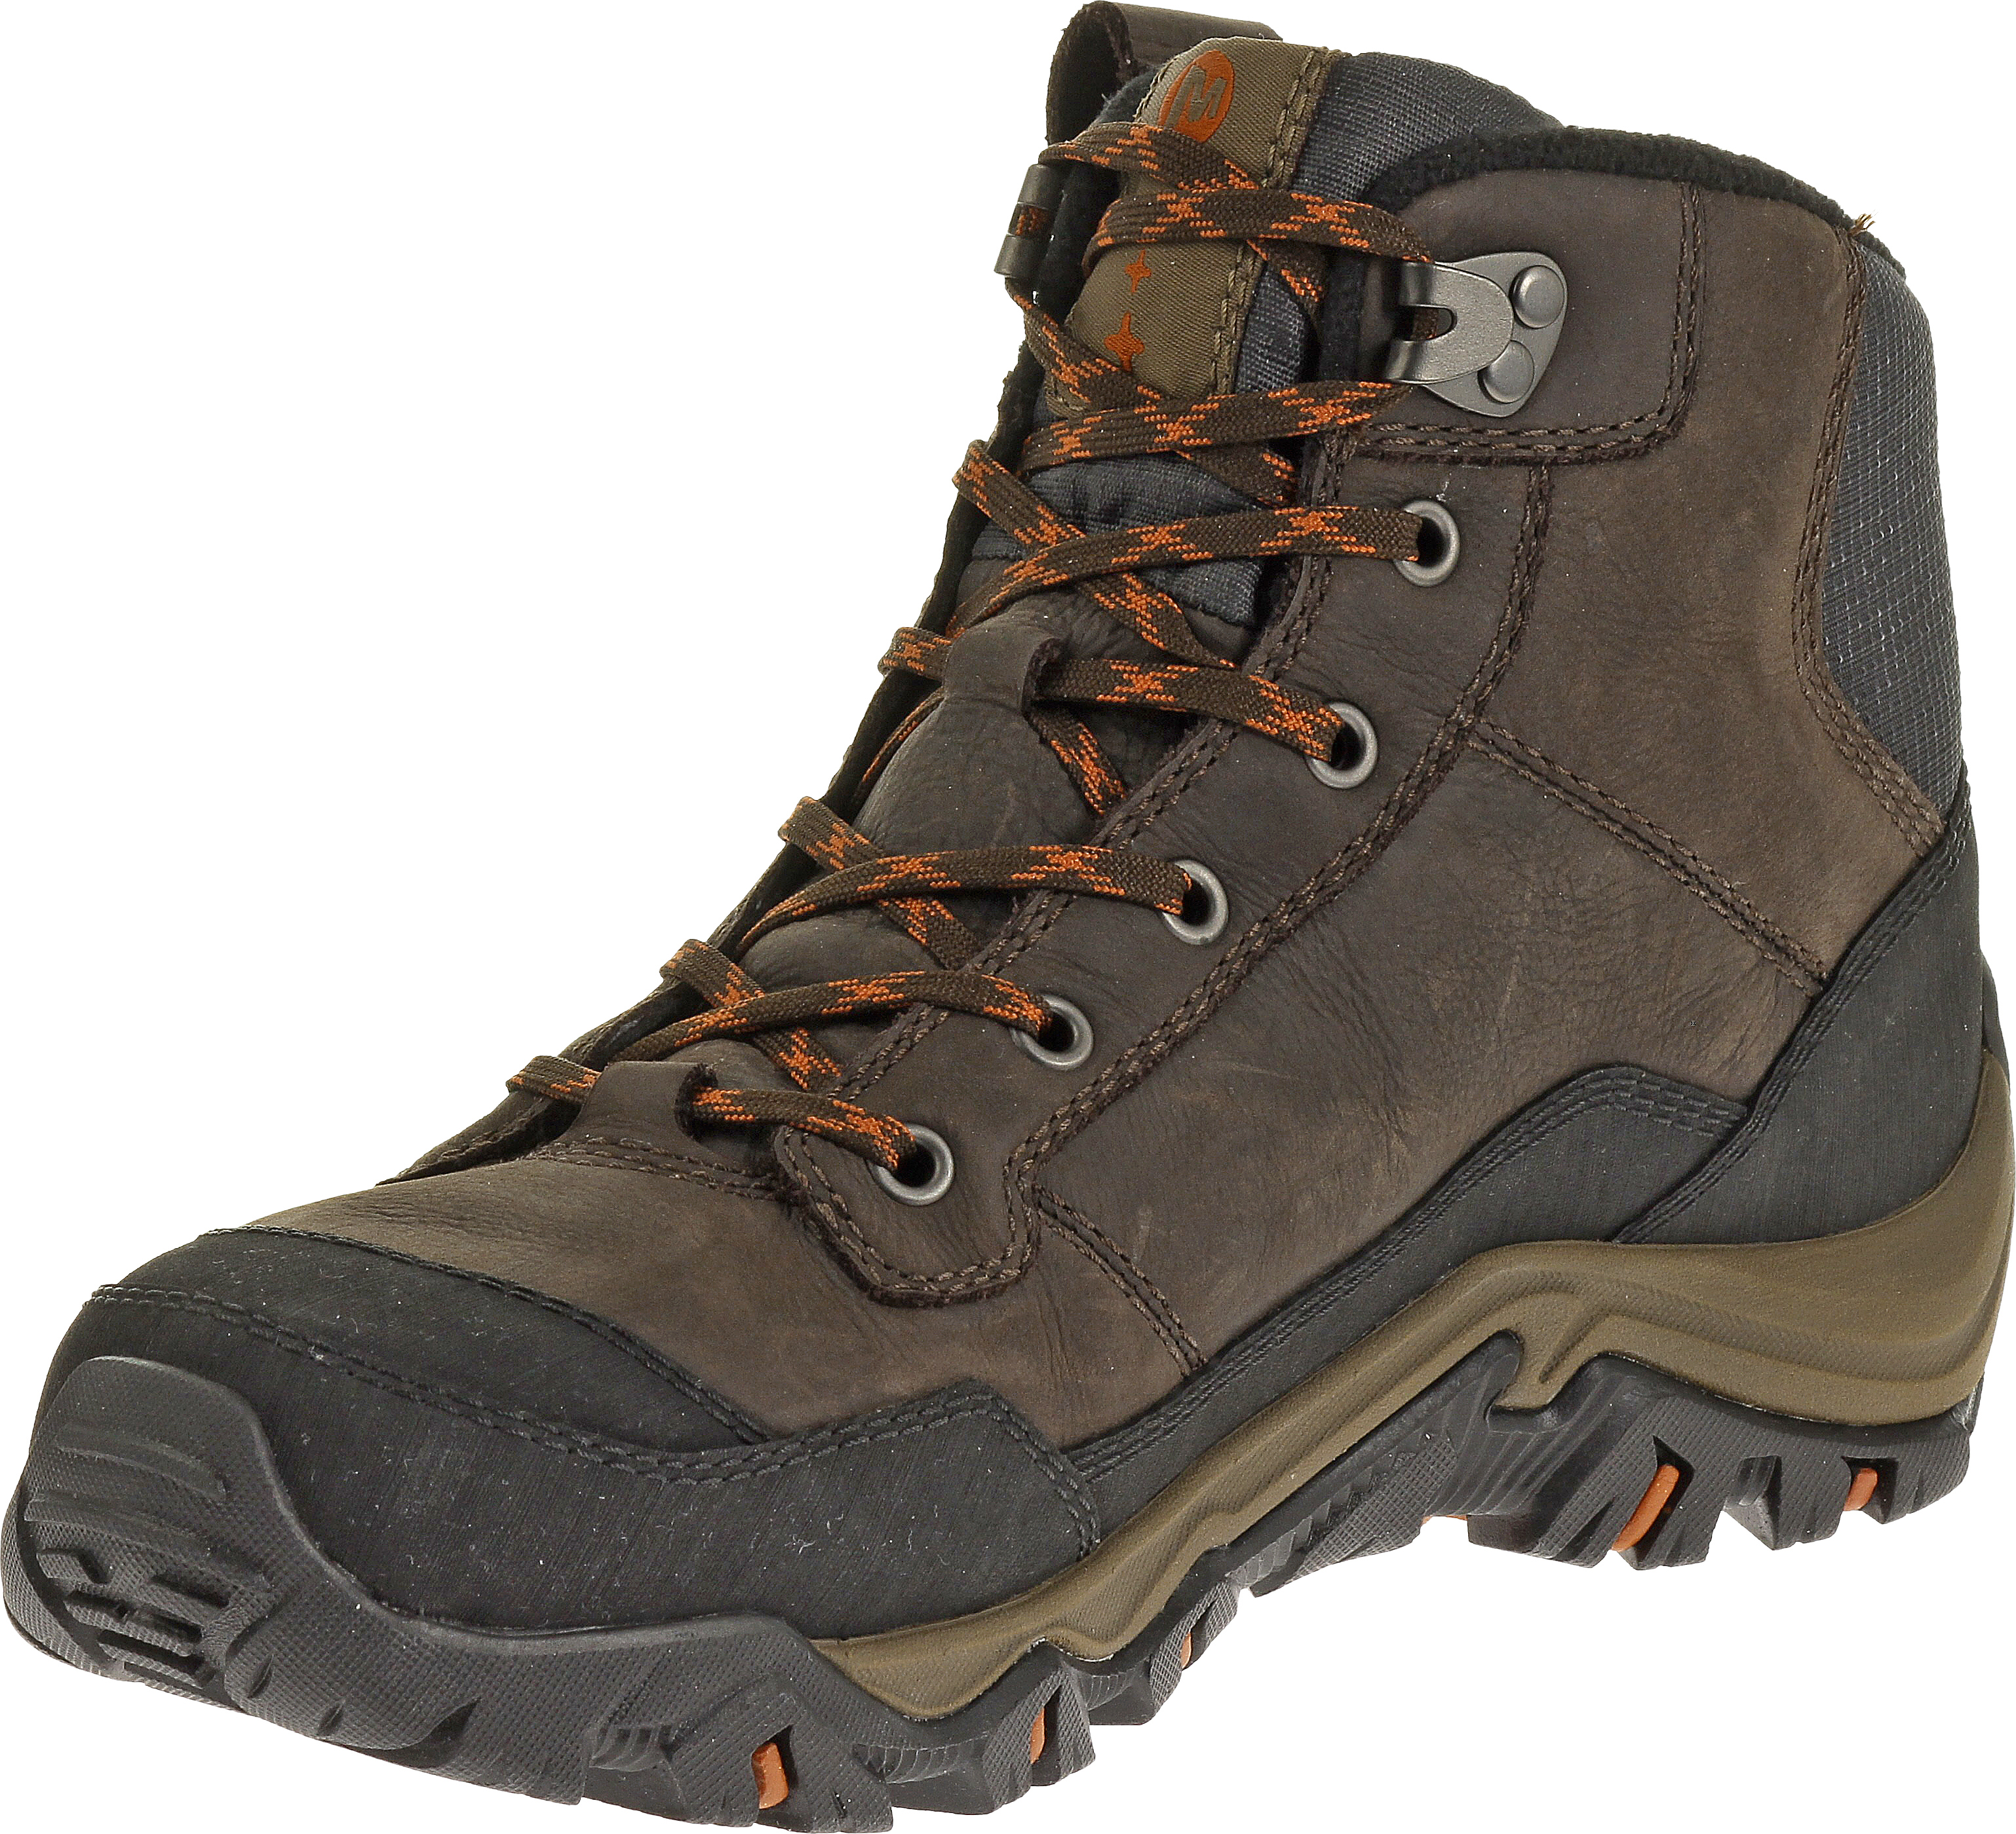 3d95e912e67 Merrell Polarand Rove Waterproof Winter Boots - Men's